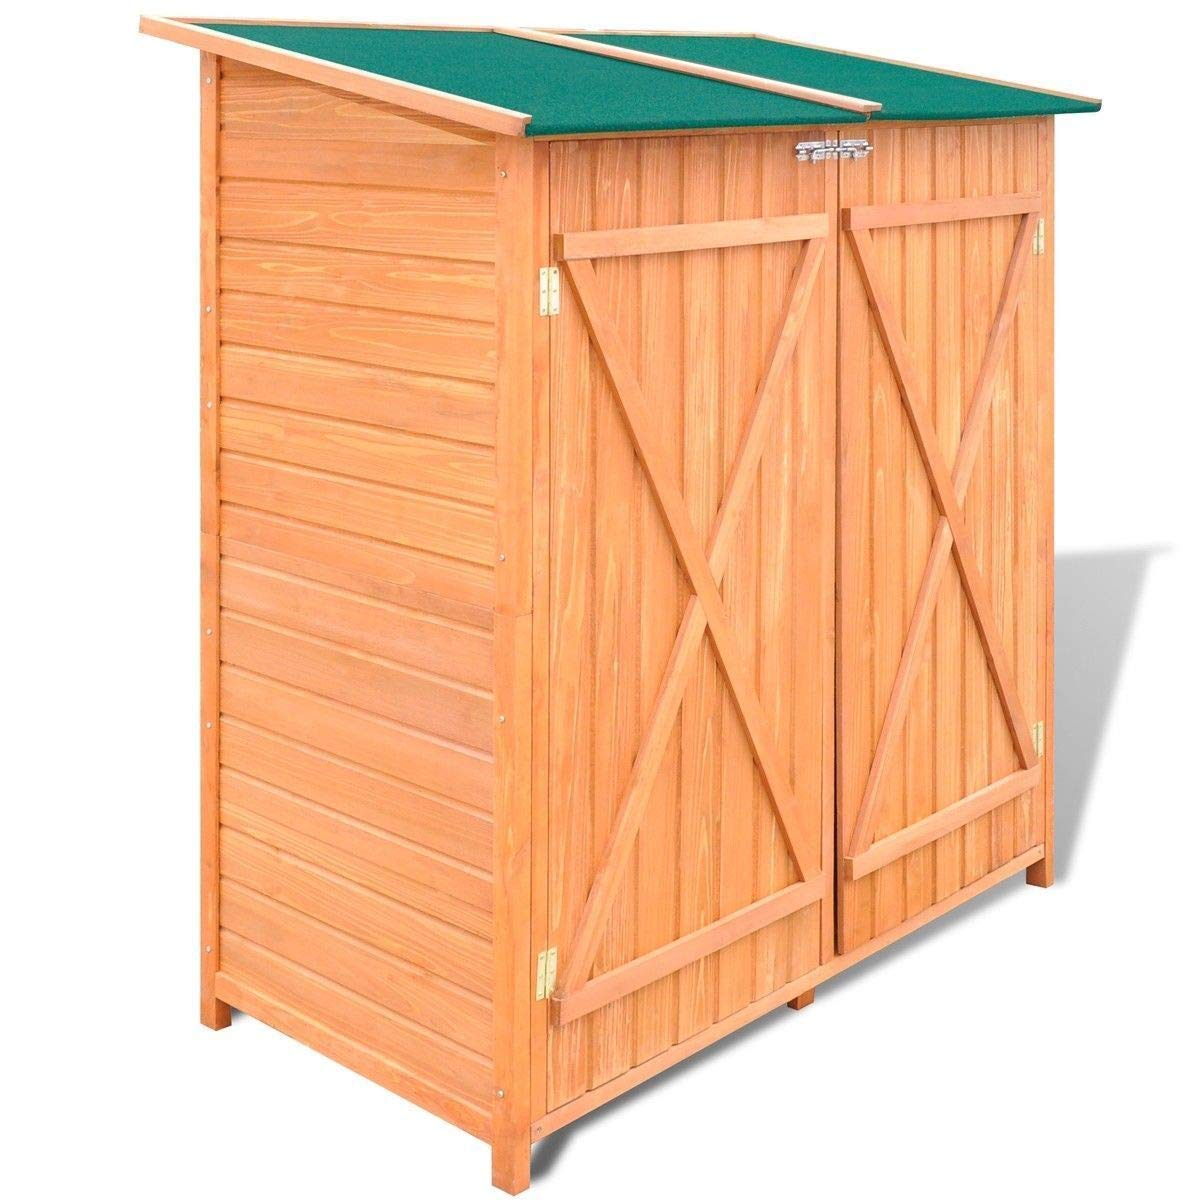 cheap wood storage shed kits find wood storage shed kits deals on